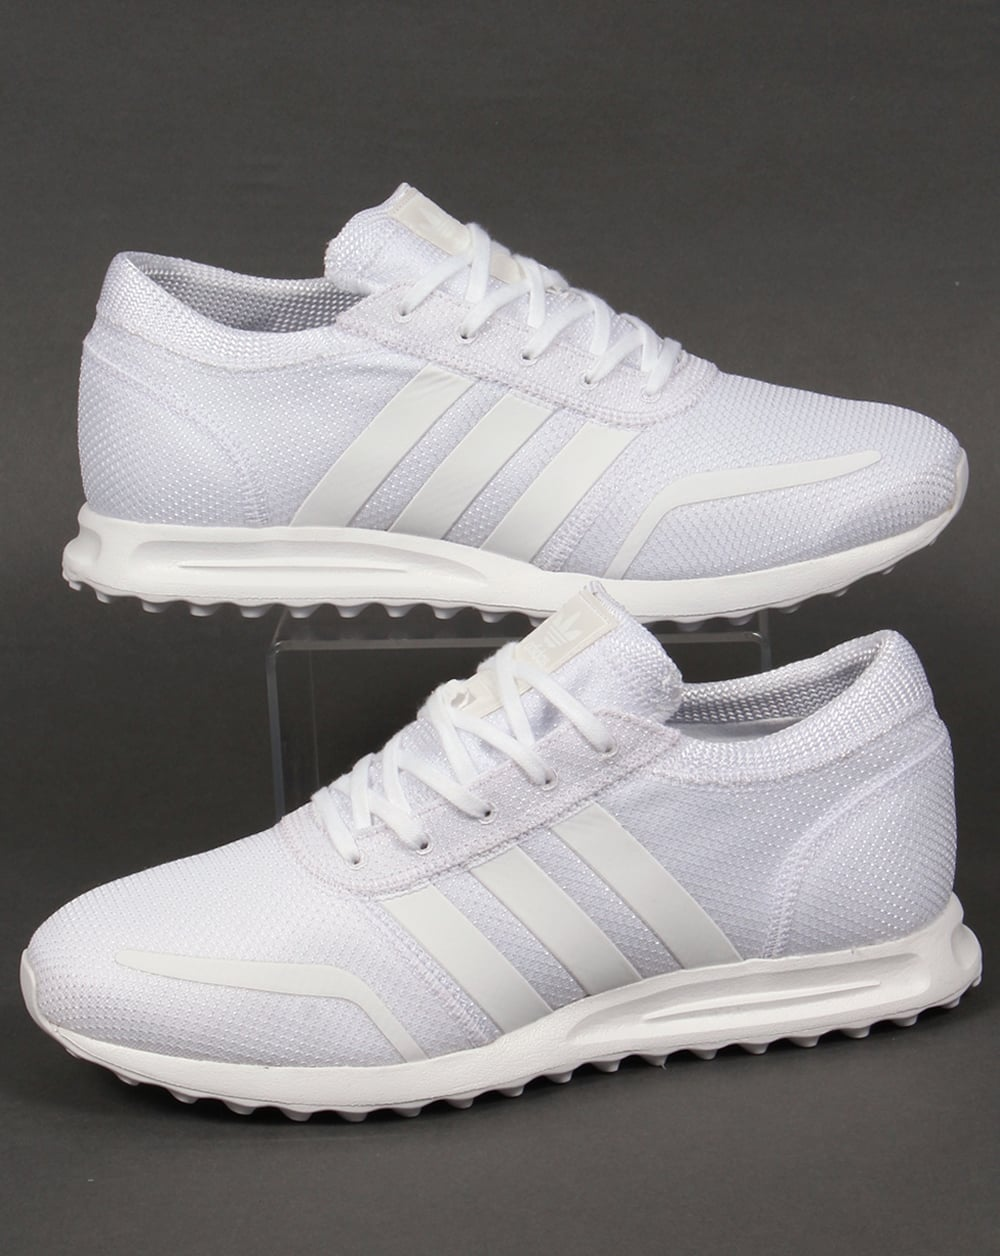 reputable site 44ae1 7e1af adidas Trainers Adidas Los Angeles Trainers Pure White